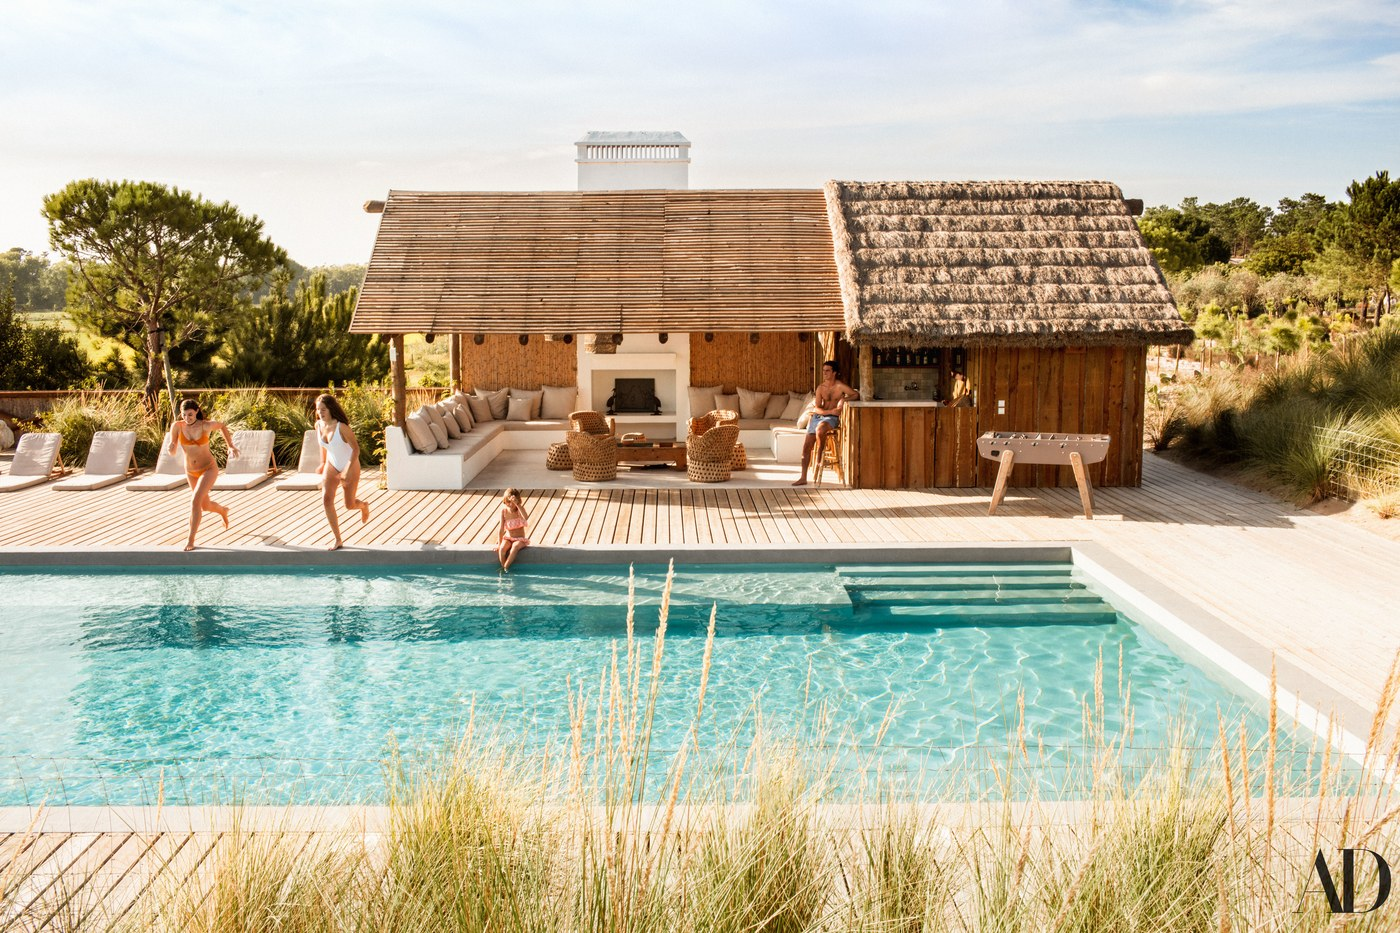 Décor Inspiration: A Relaxed & Wicker-Filled Home in Comporta, Portugal